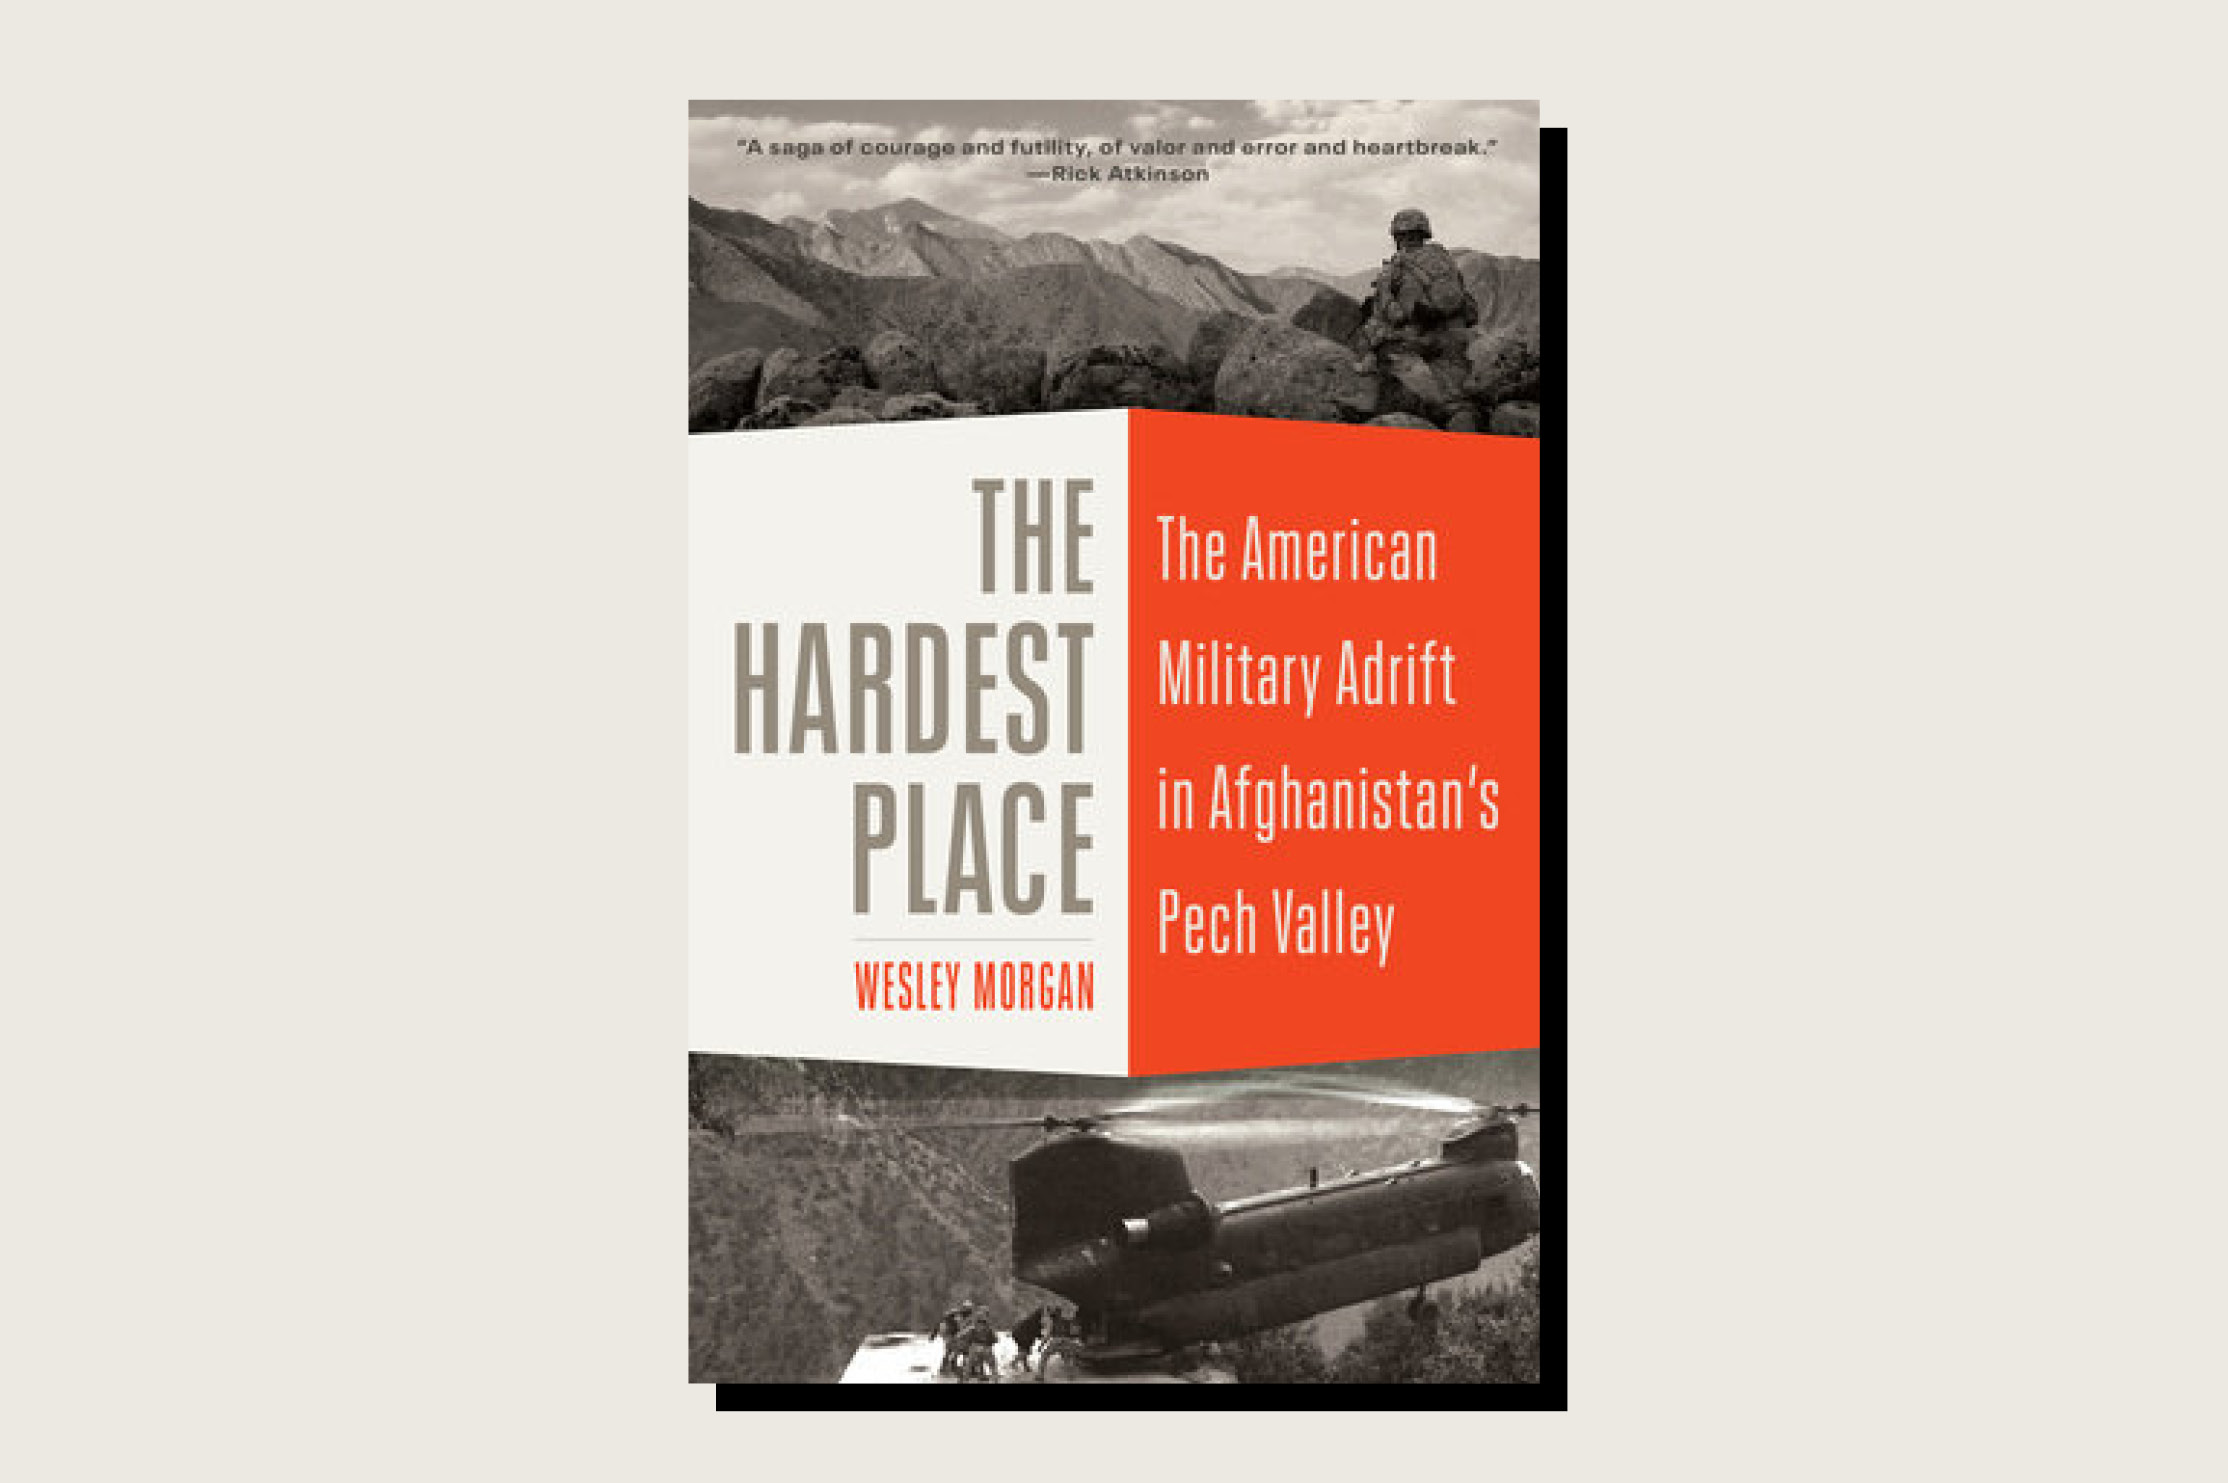 The Hardest Place: The American Military Adrift in Afghanistan's Pech Valley, Wesley Morgan, Random House, 672 pp., , March 2021